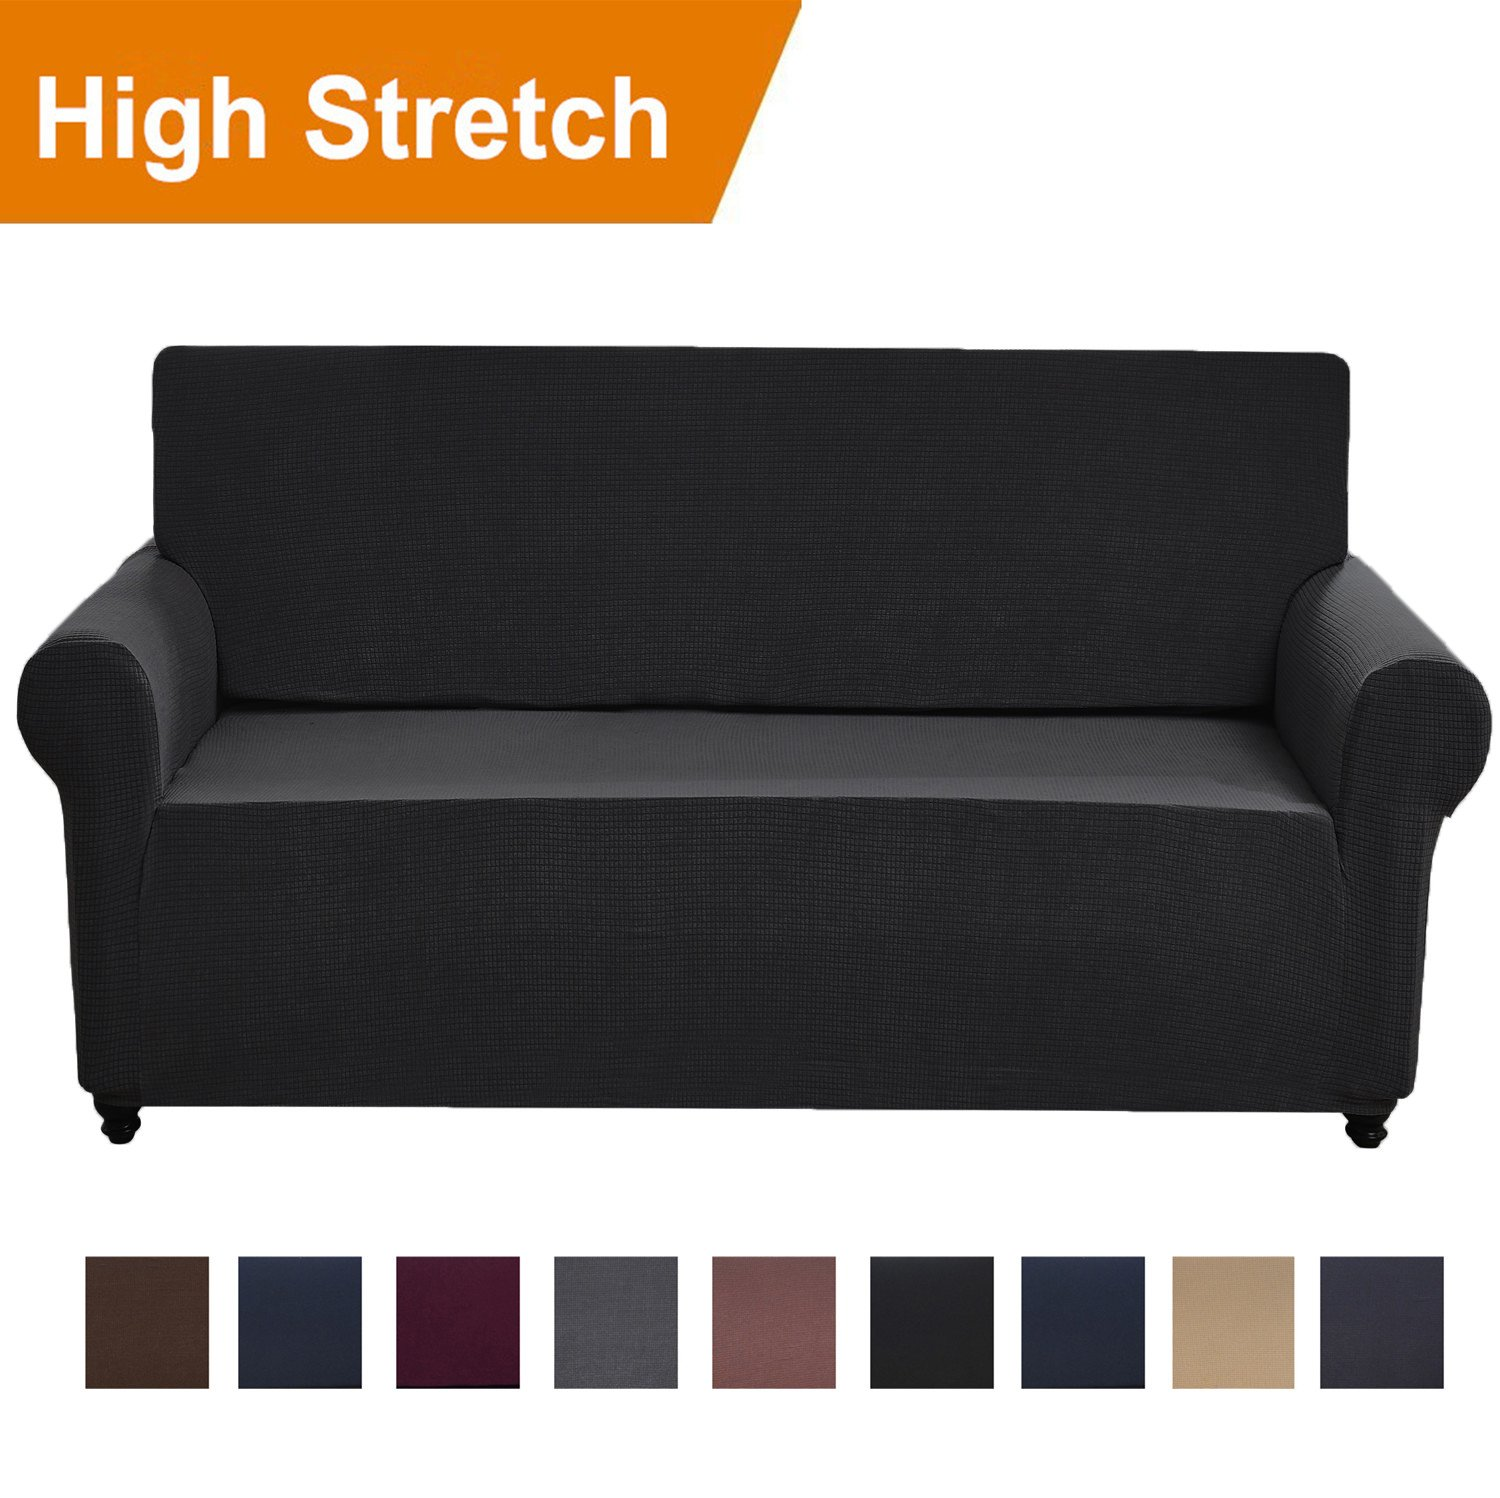 Cheap Sofa Covers Sale Find Sofa Covers Sale Deals On